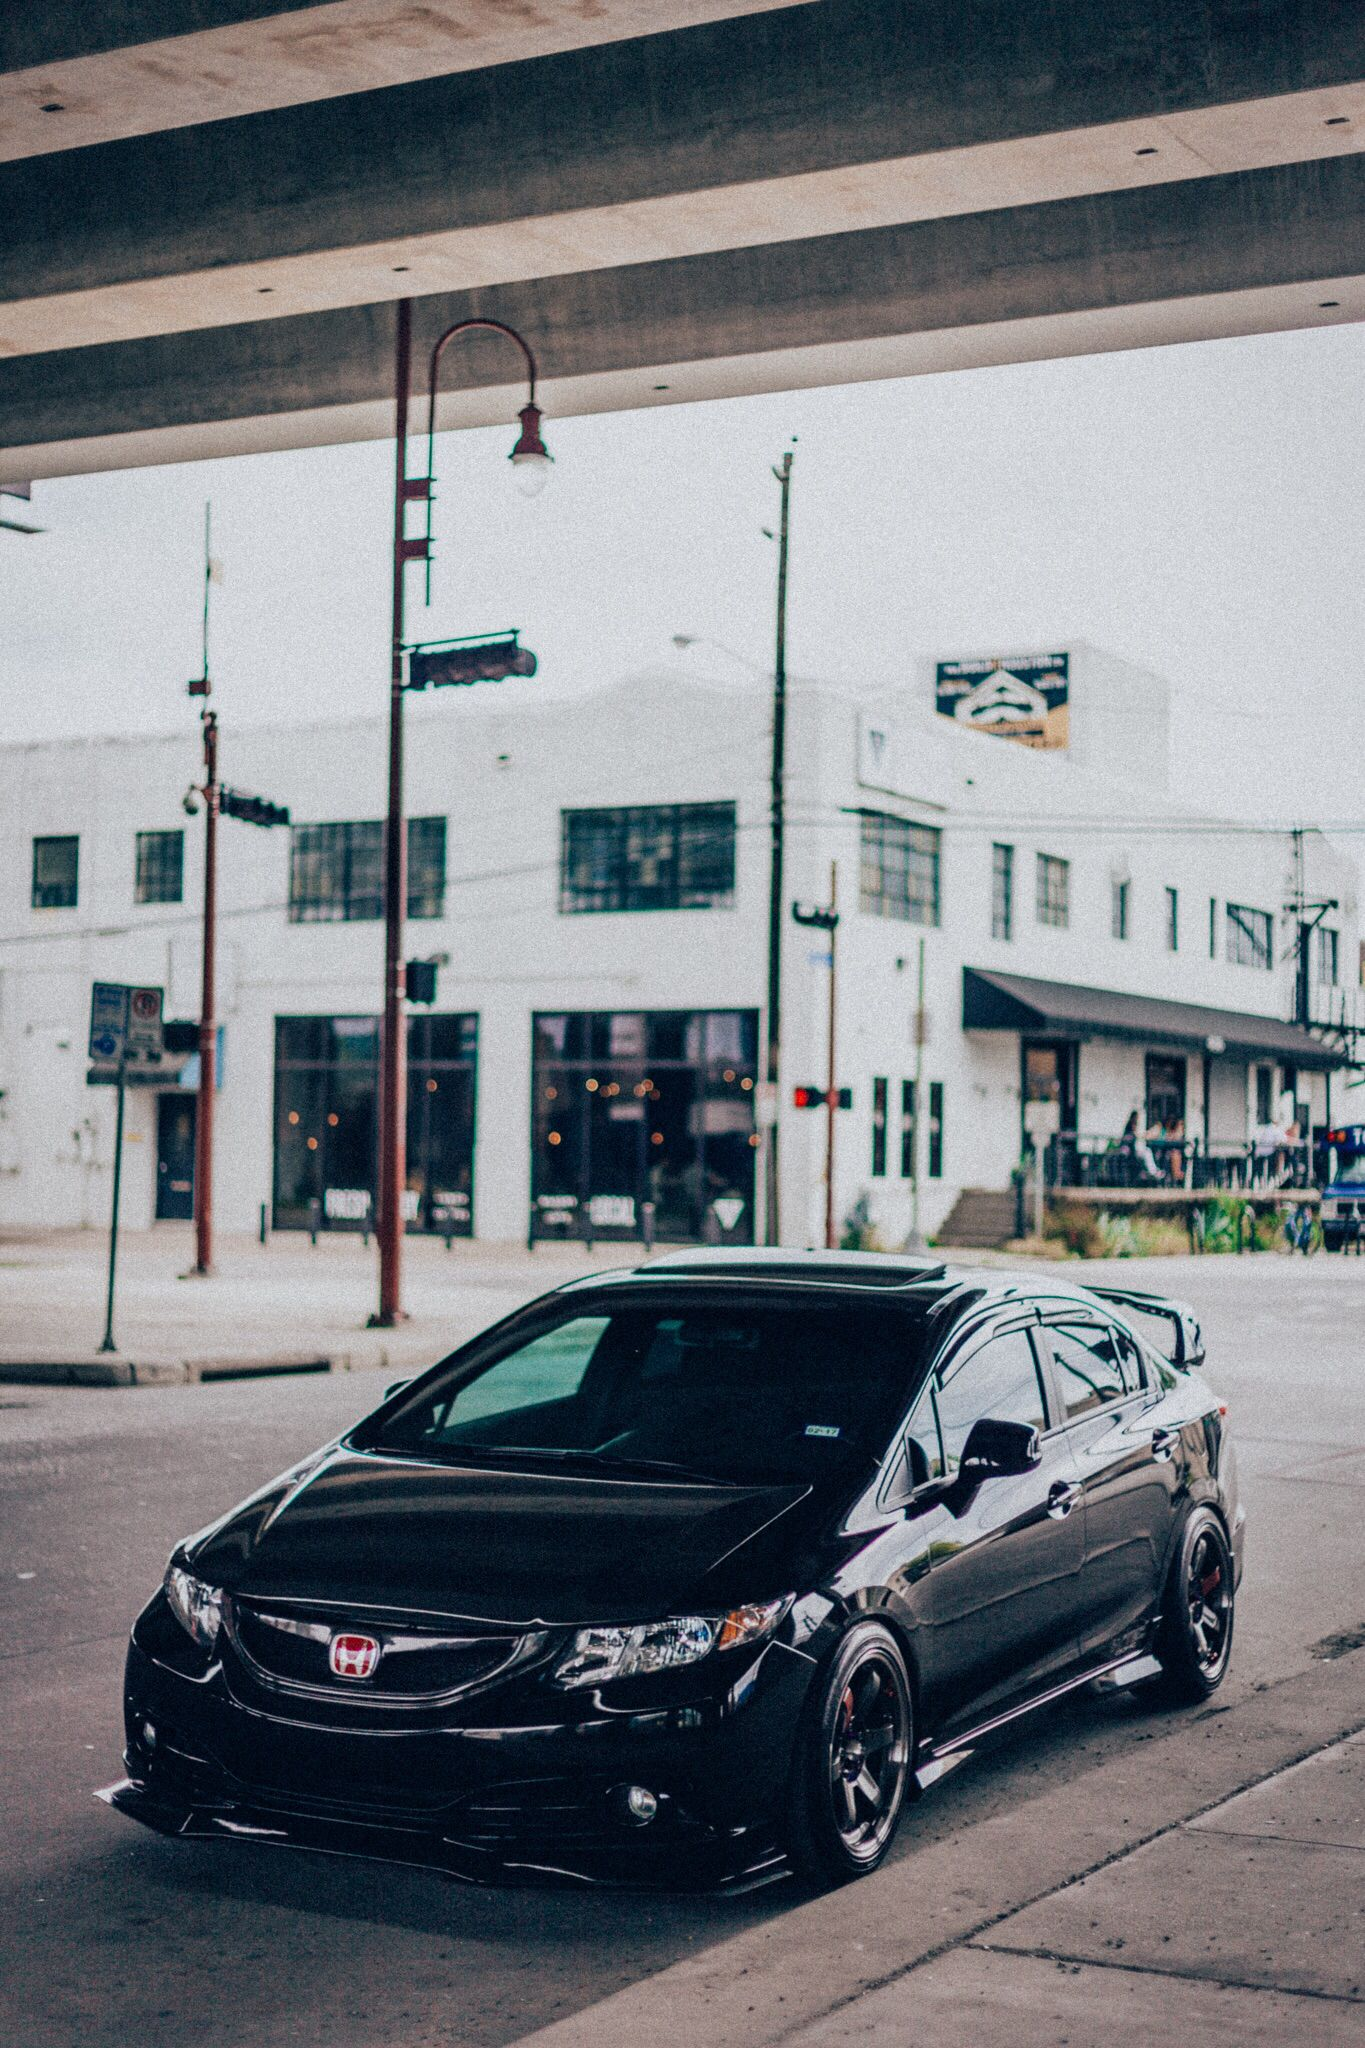 2013 Honda Civic SI. IG: Why_yoan